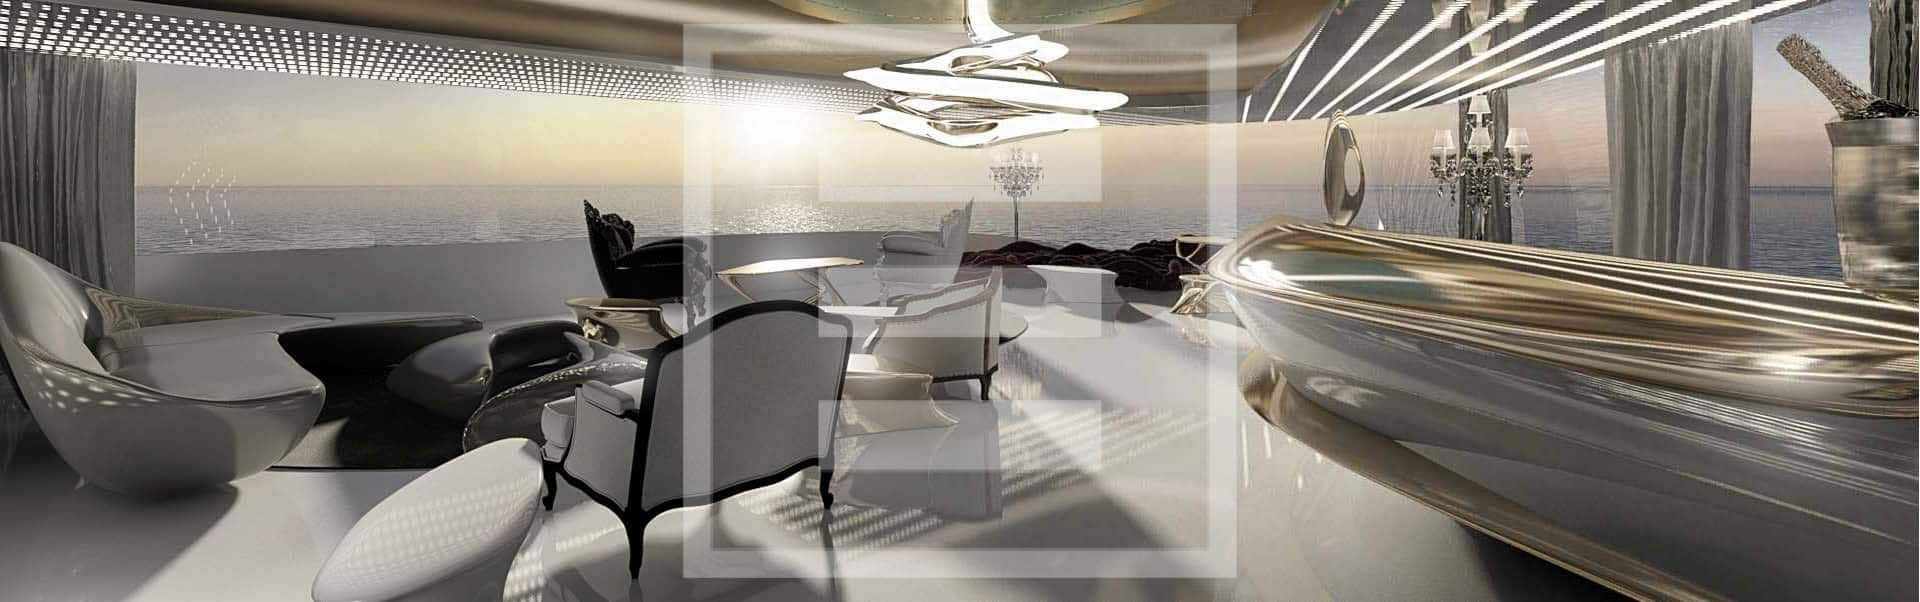 The futuristic interiors that feel like a modern take on 1970s sci-fi chic of the the Admiral XForce 145